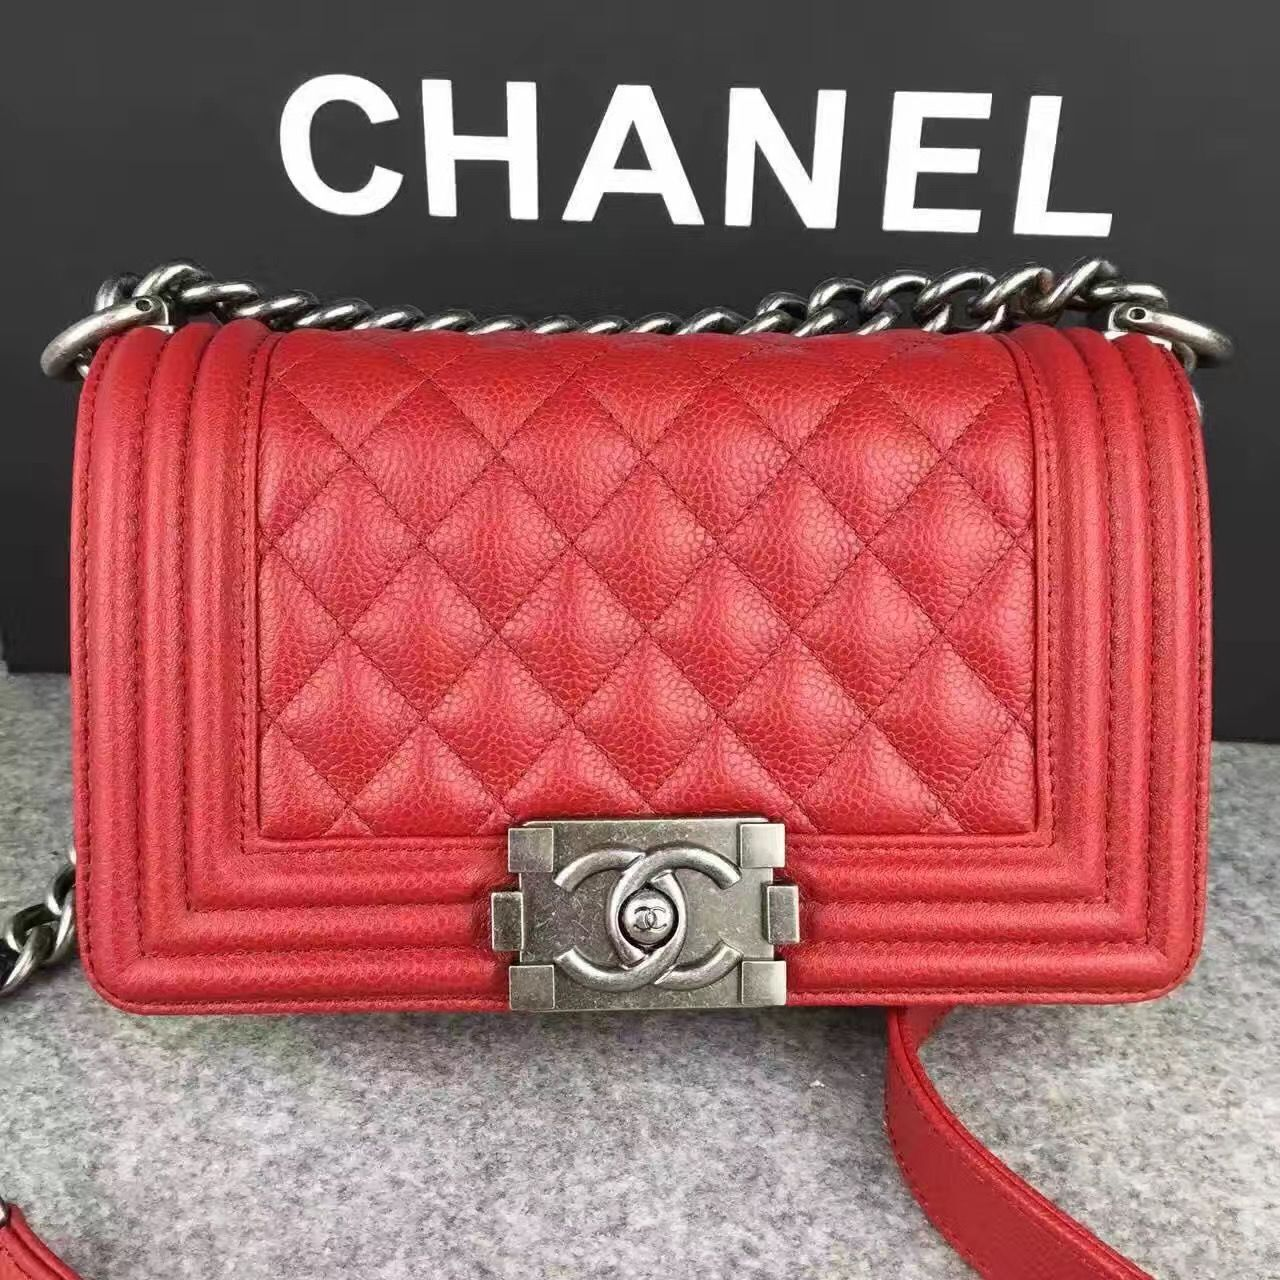 Chanel Le Boy Flap Shoulder Bag Original Cavier Leather A67085 Red Silver Buckle